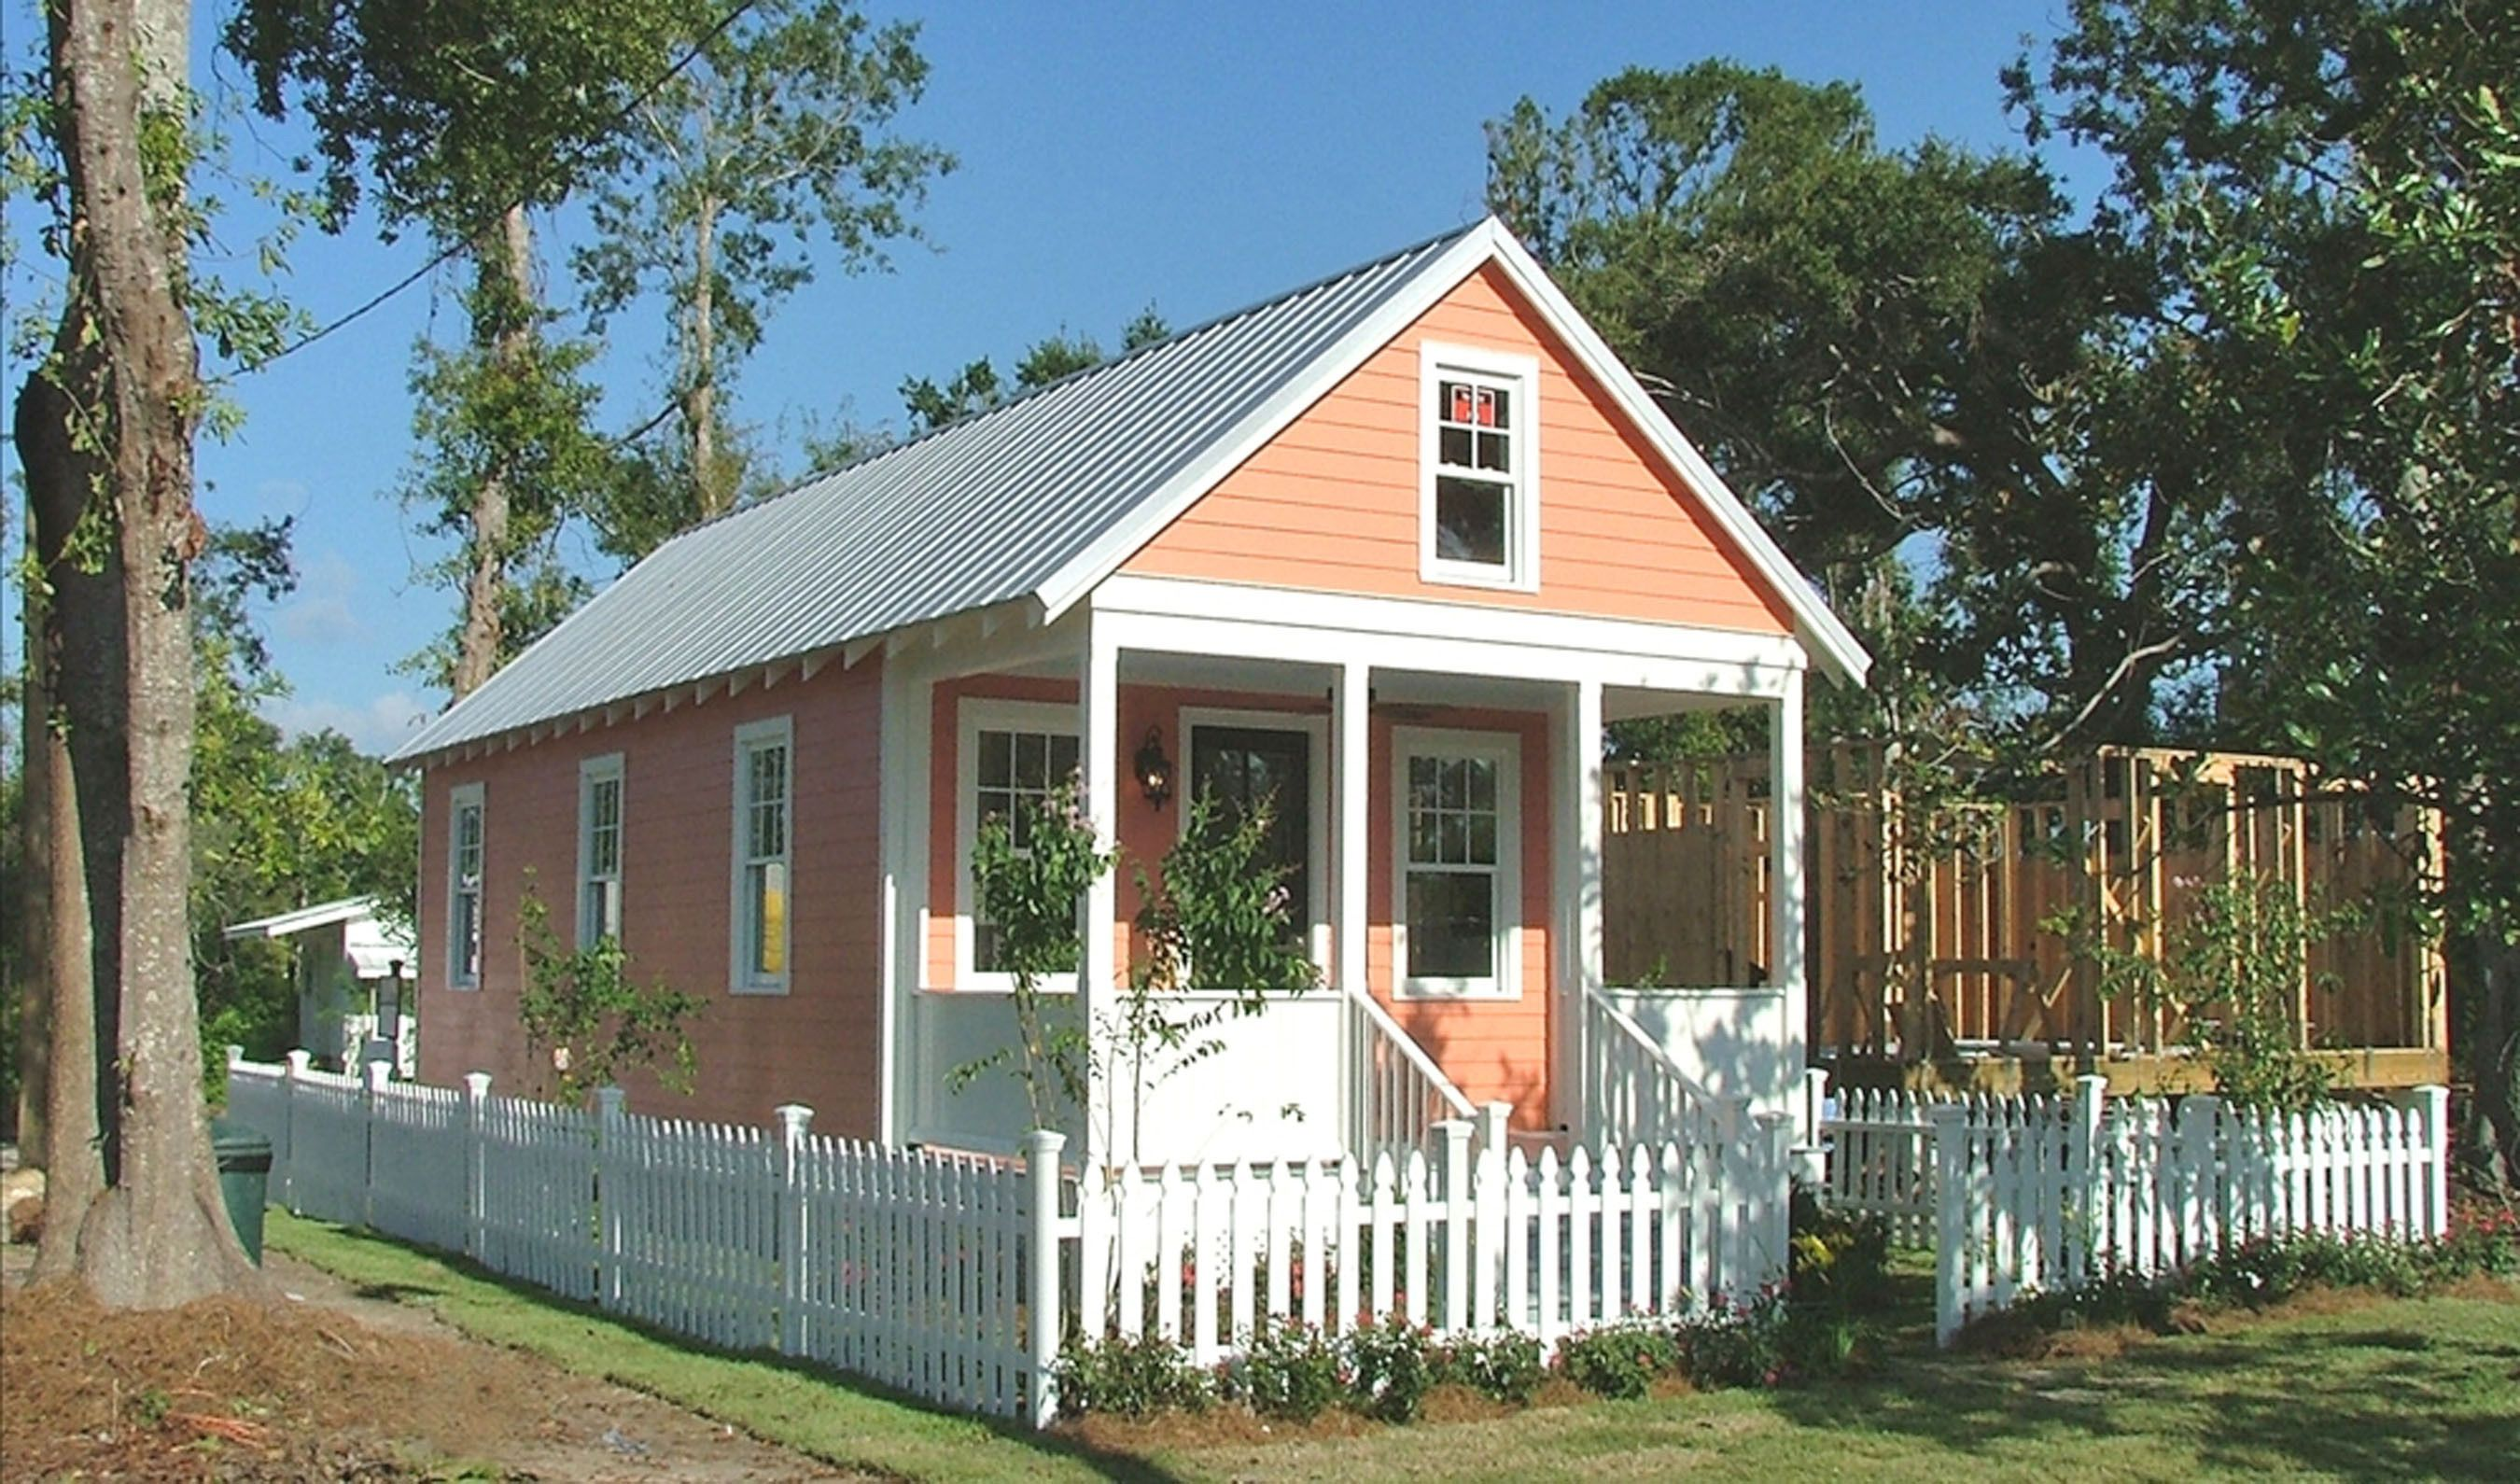 House styles from americas founding to present prefab